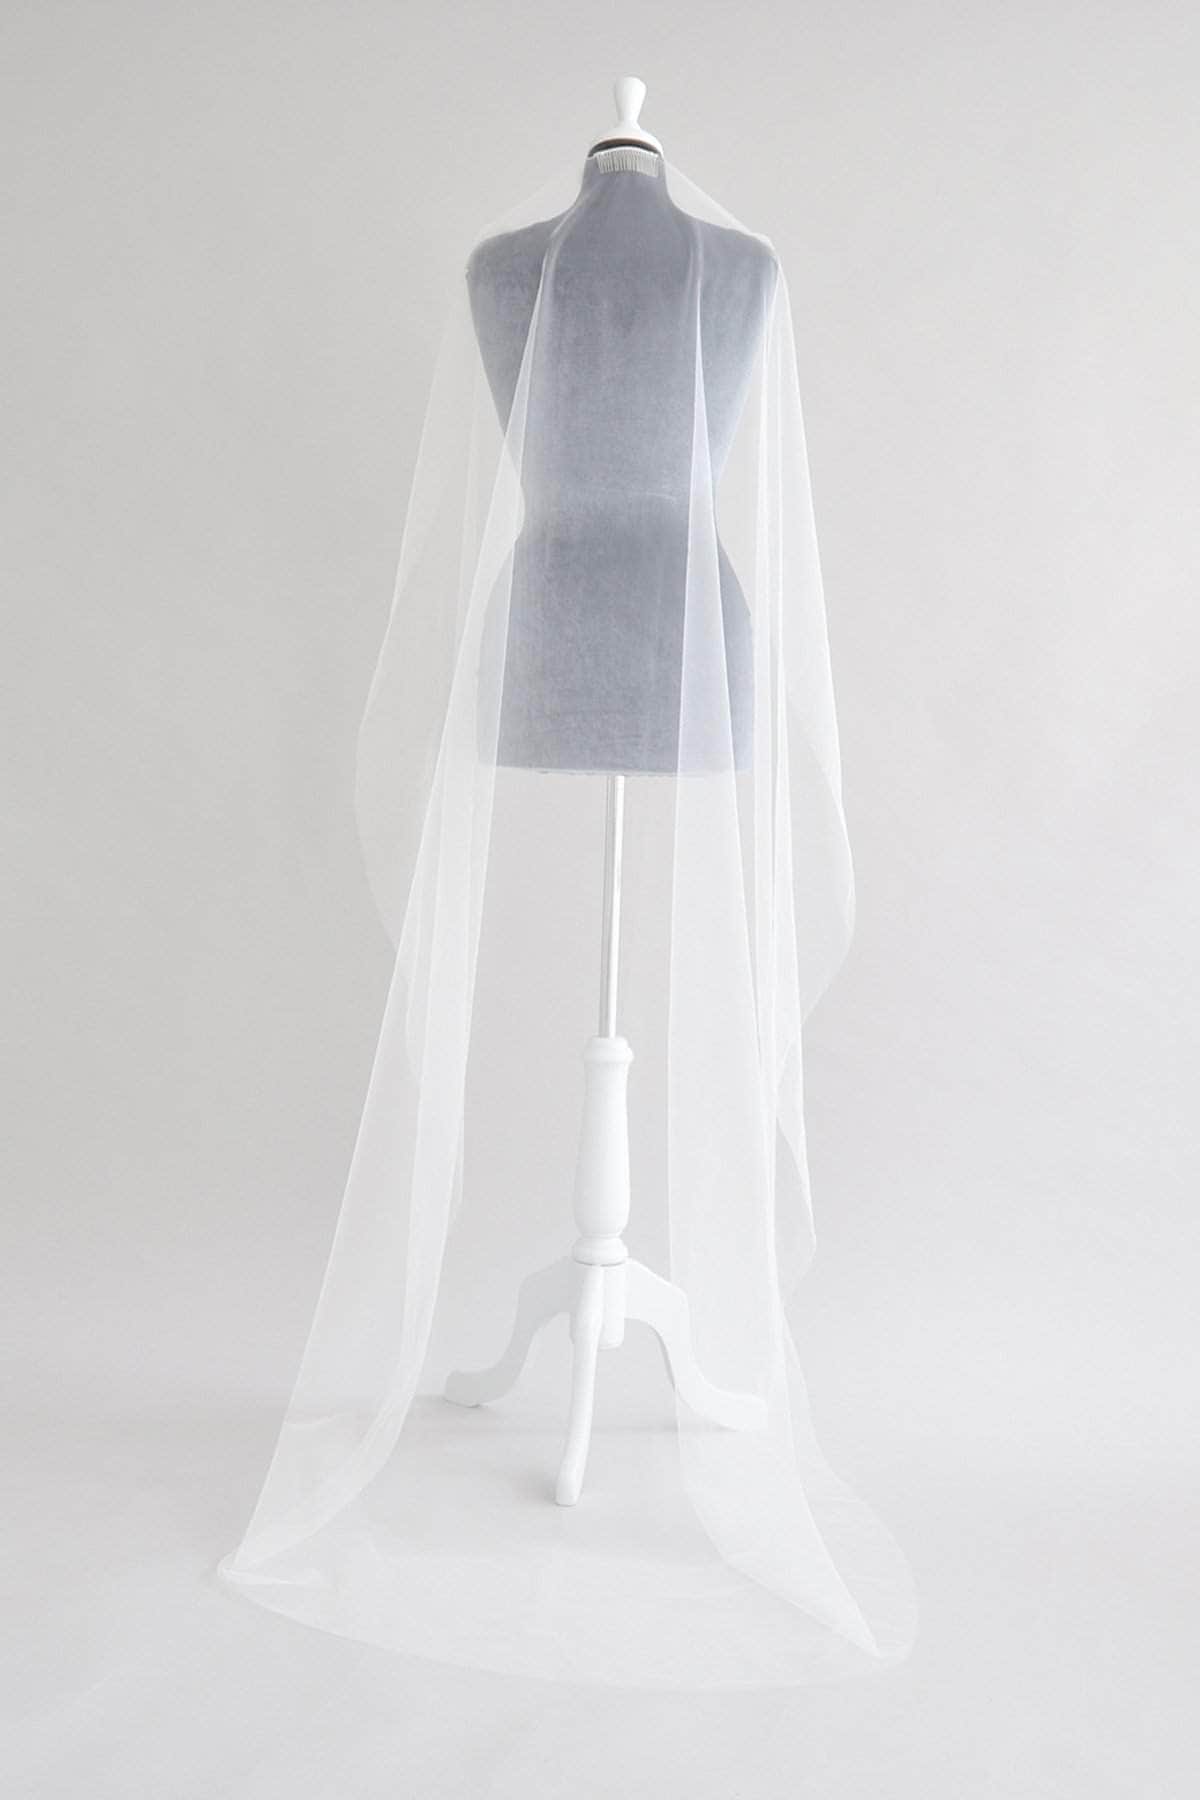 Illusion tulle barely there wedding veil - 'Angelica'